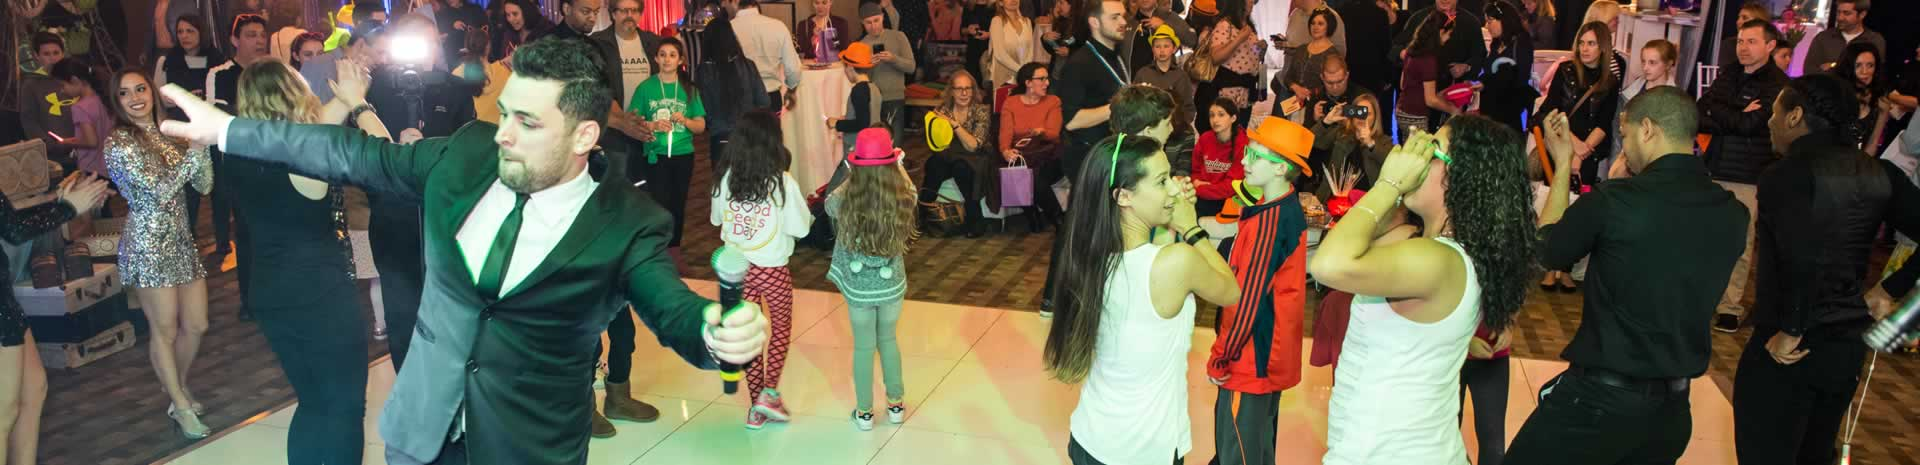 Best Tips for Planning a Bar or Bat Mitzvah